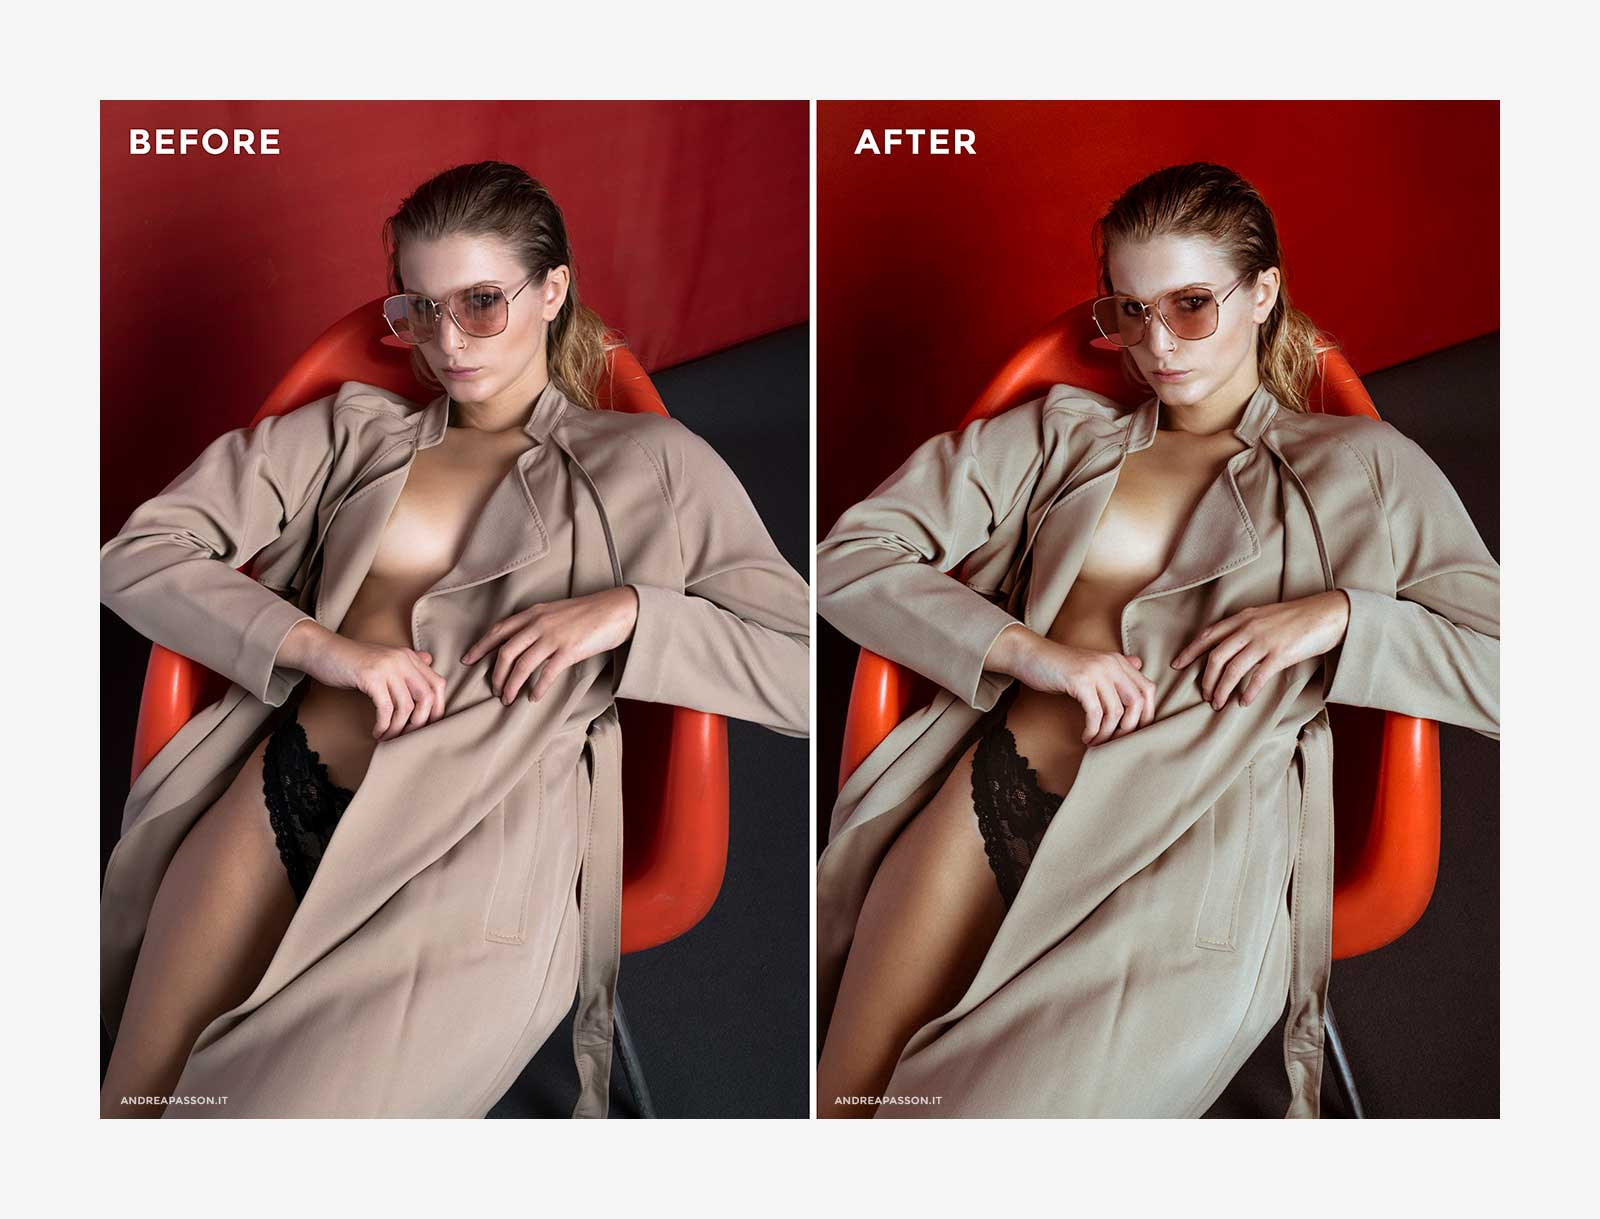 Before & After - Post Produzione Fotografica Professionale a Treviso - Fashion Model Eyewear